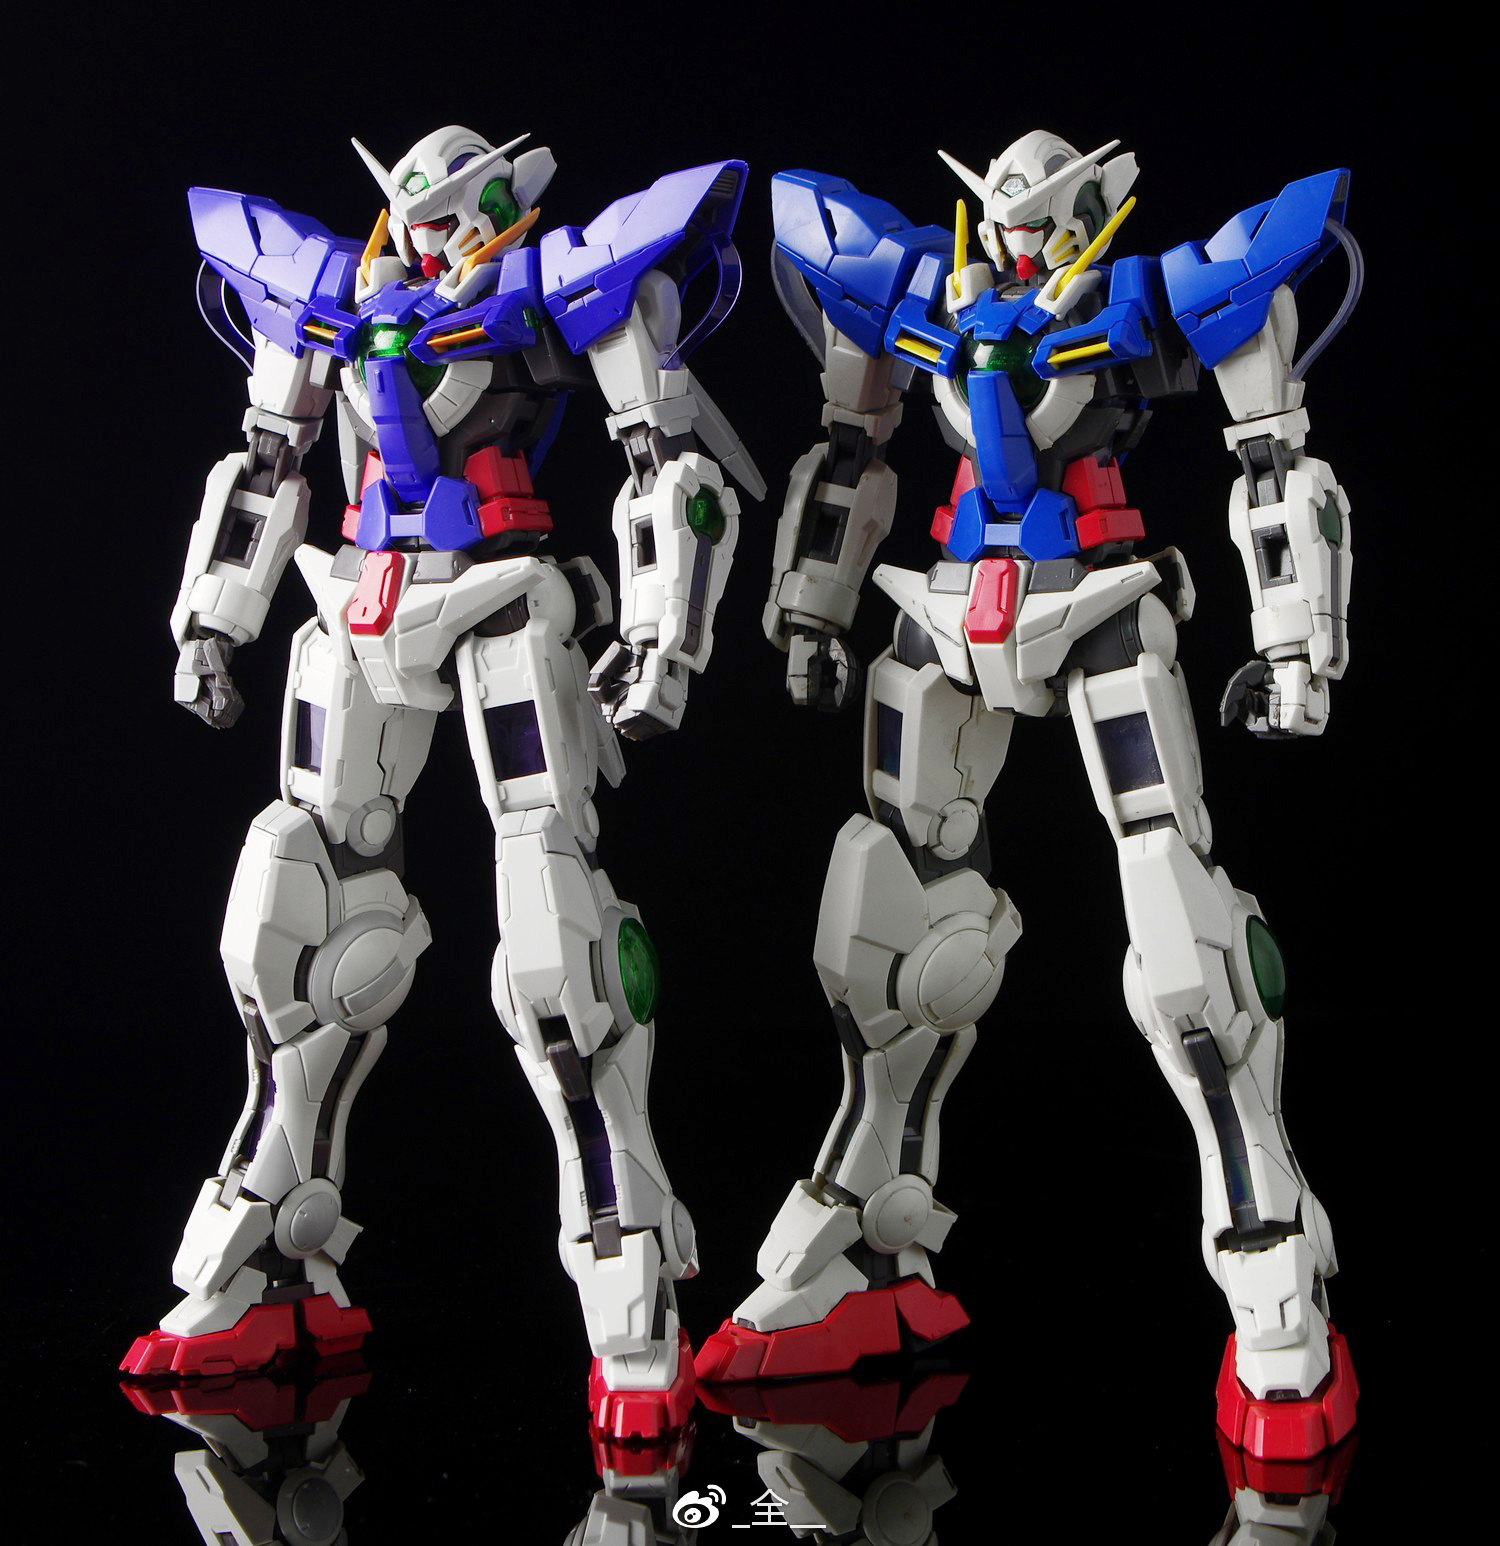 S269_mg_exia_led_hobby_star_inask_044.jpg